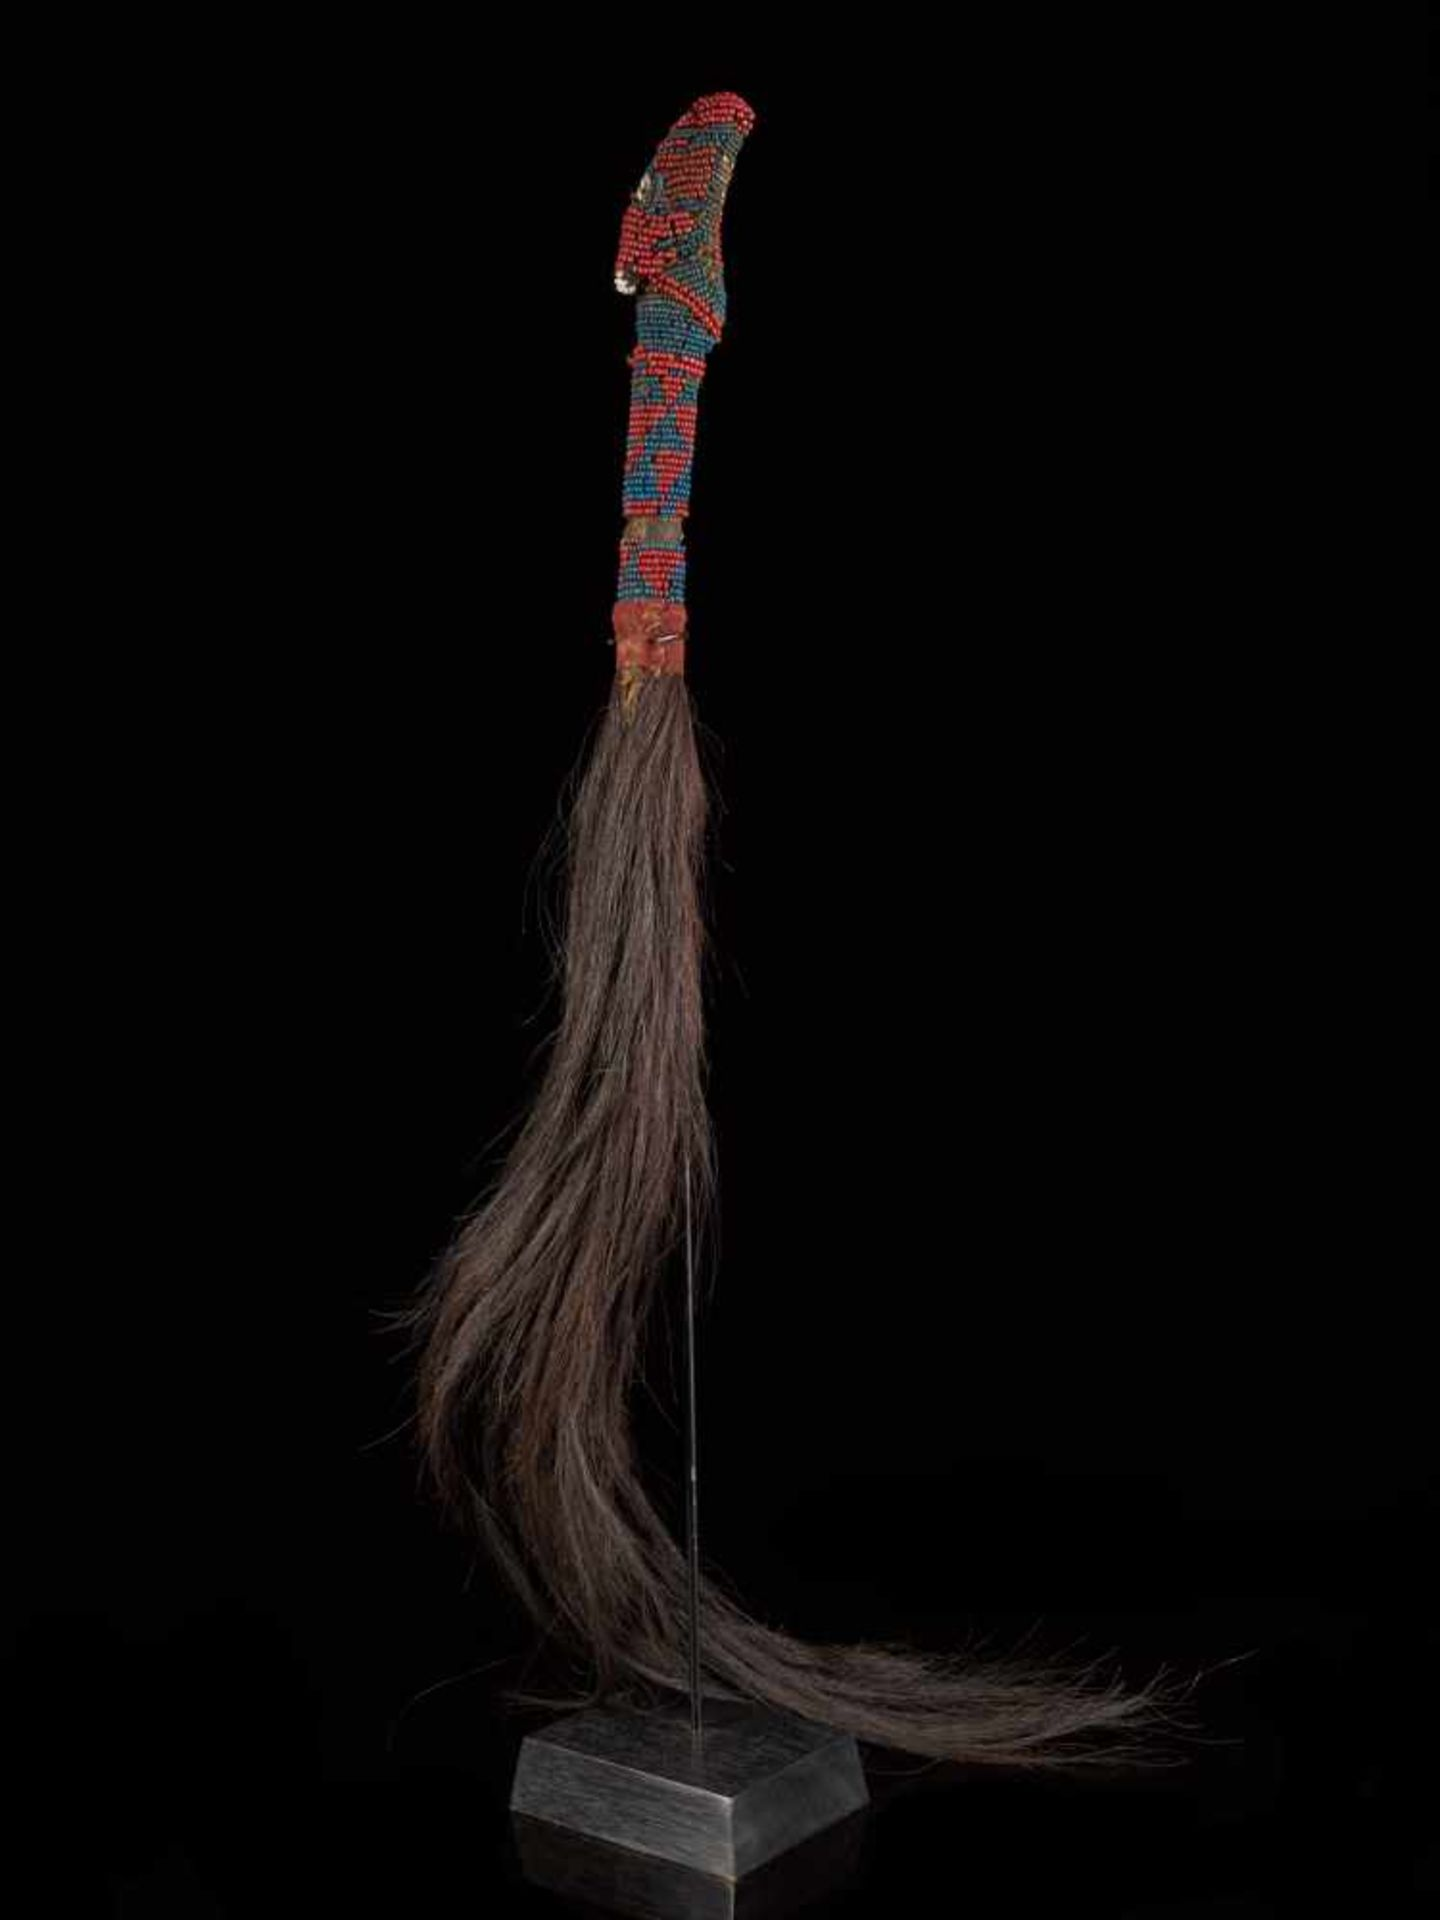 Beaded Throwing Flywhisk - Tribal ArtA gorgeously created beaded flywhisk. The handle is beautifully